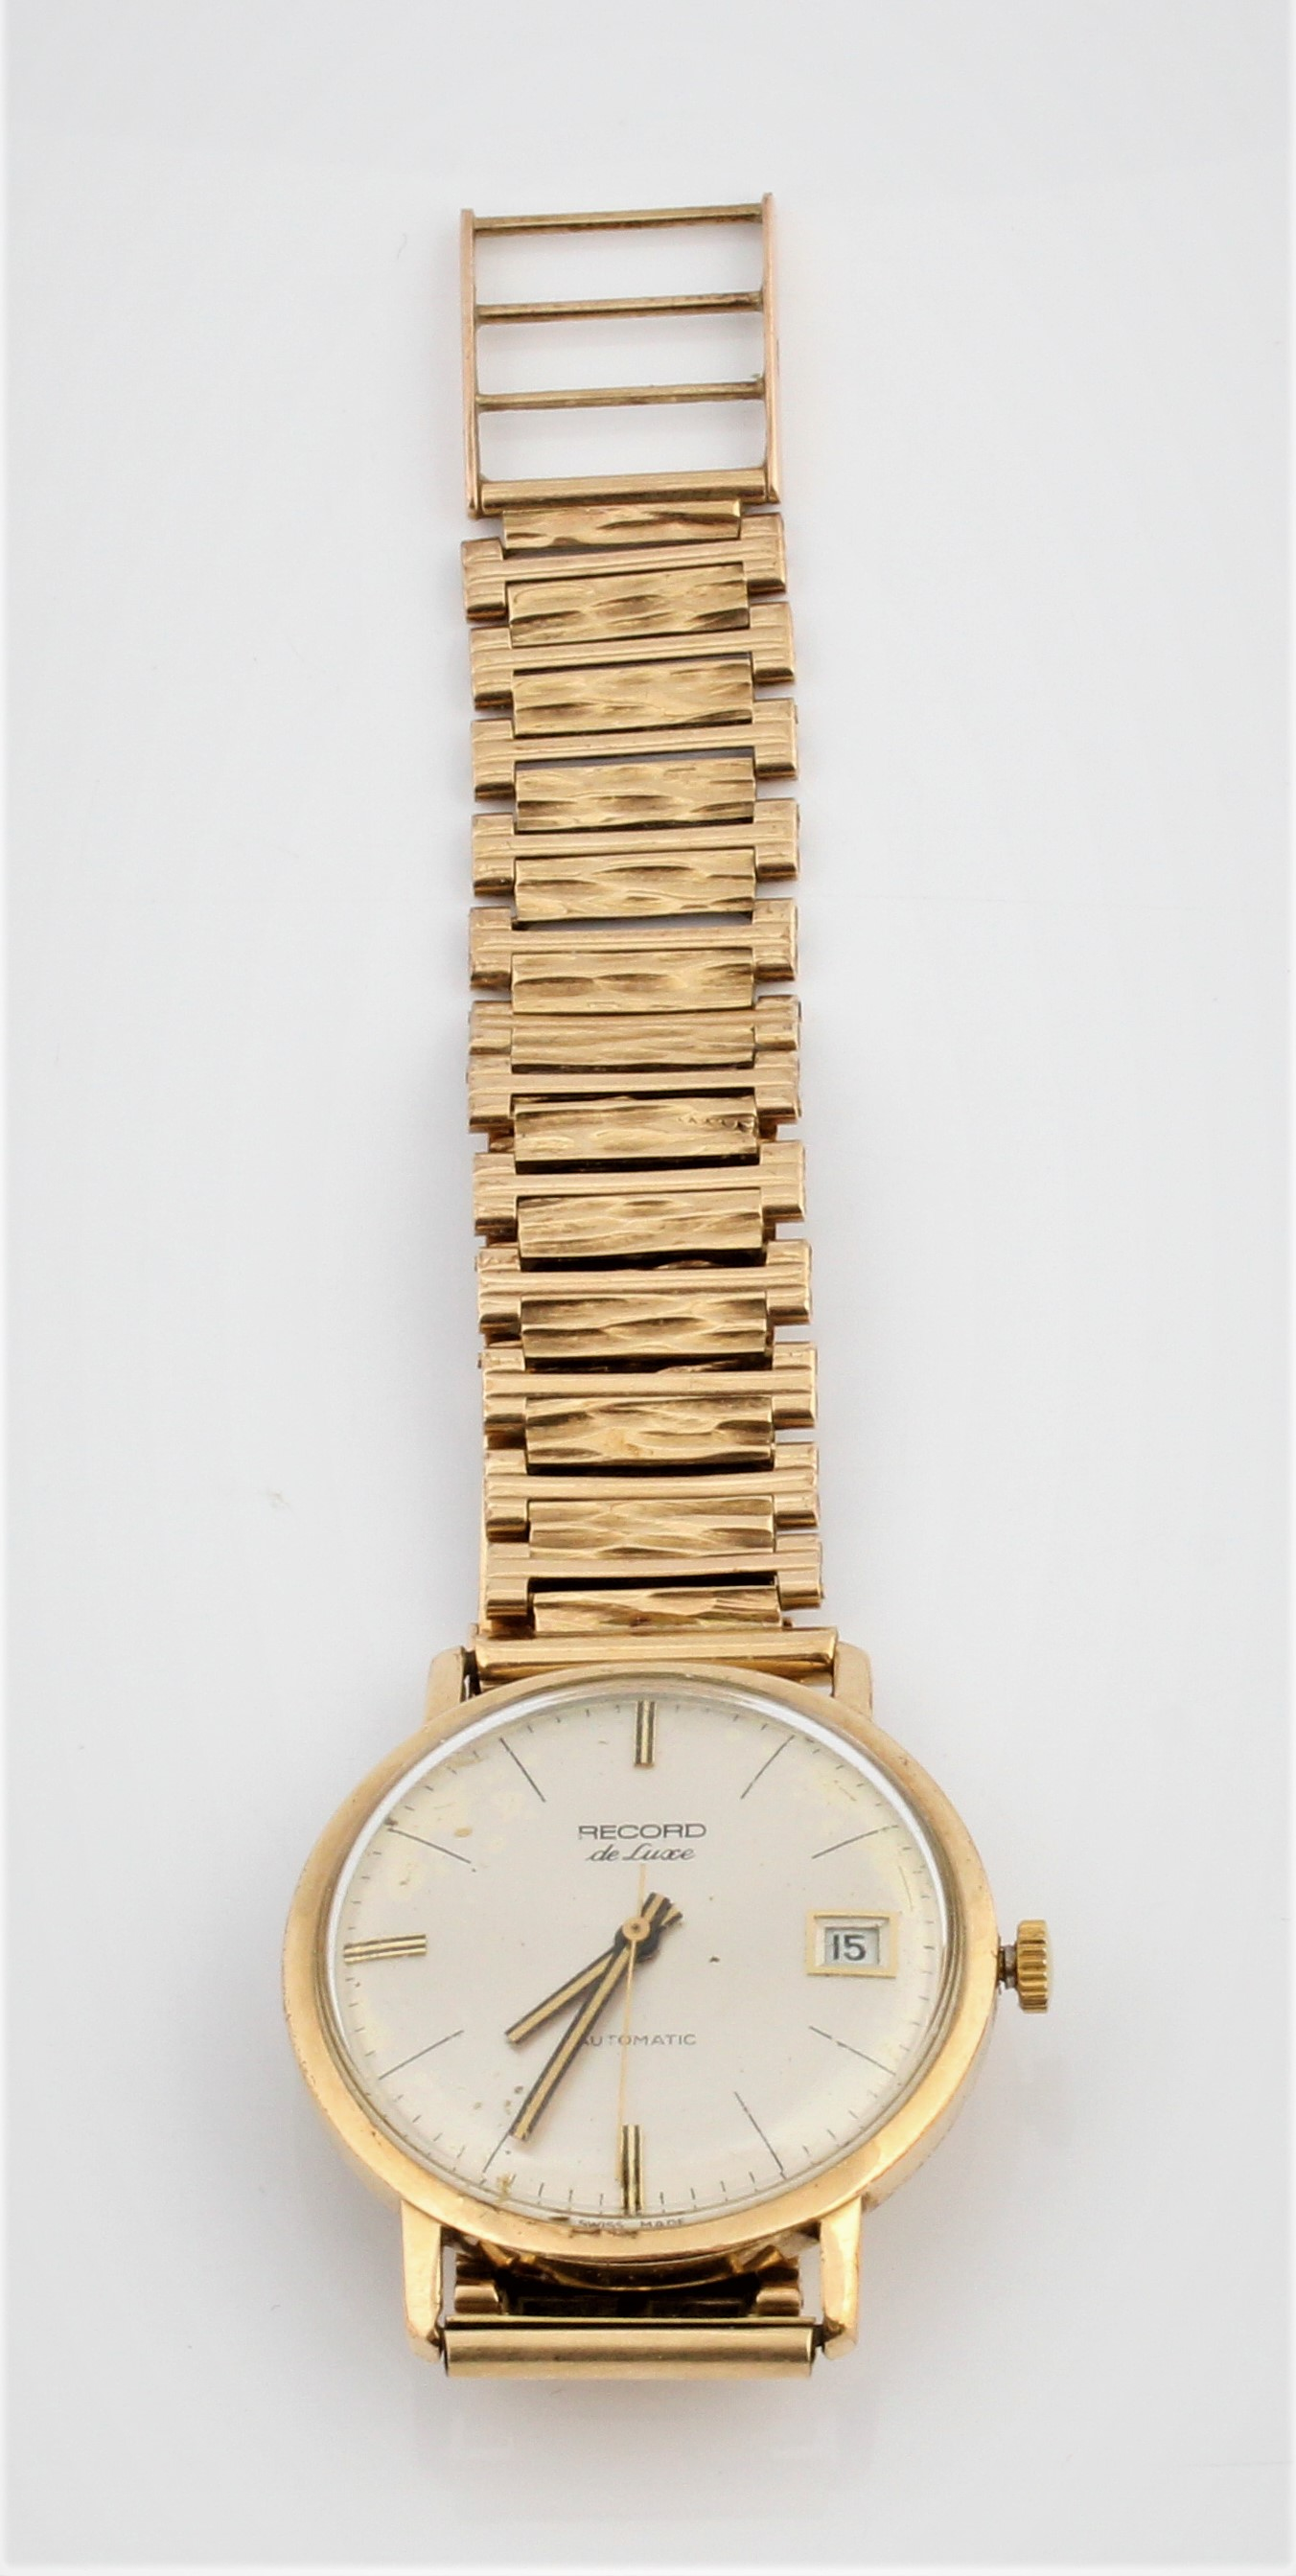 A gents Record De Luxe wristwatch, the champagne dial having hourly baton markers with date